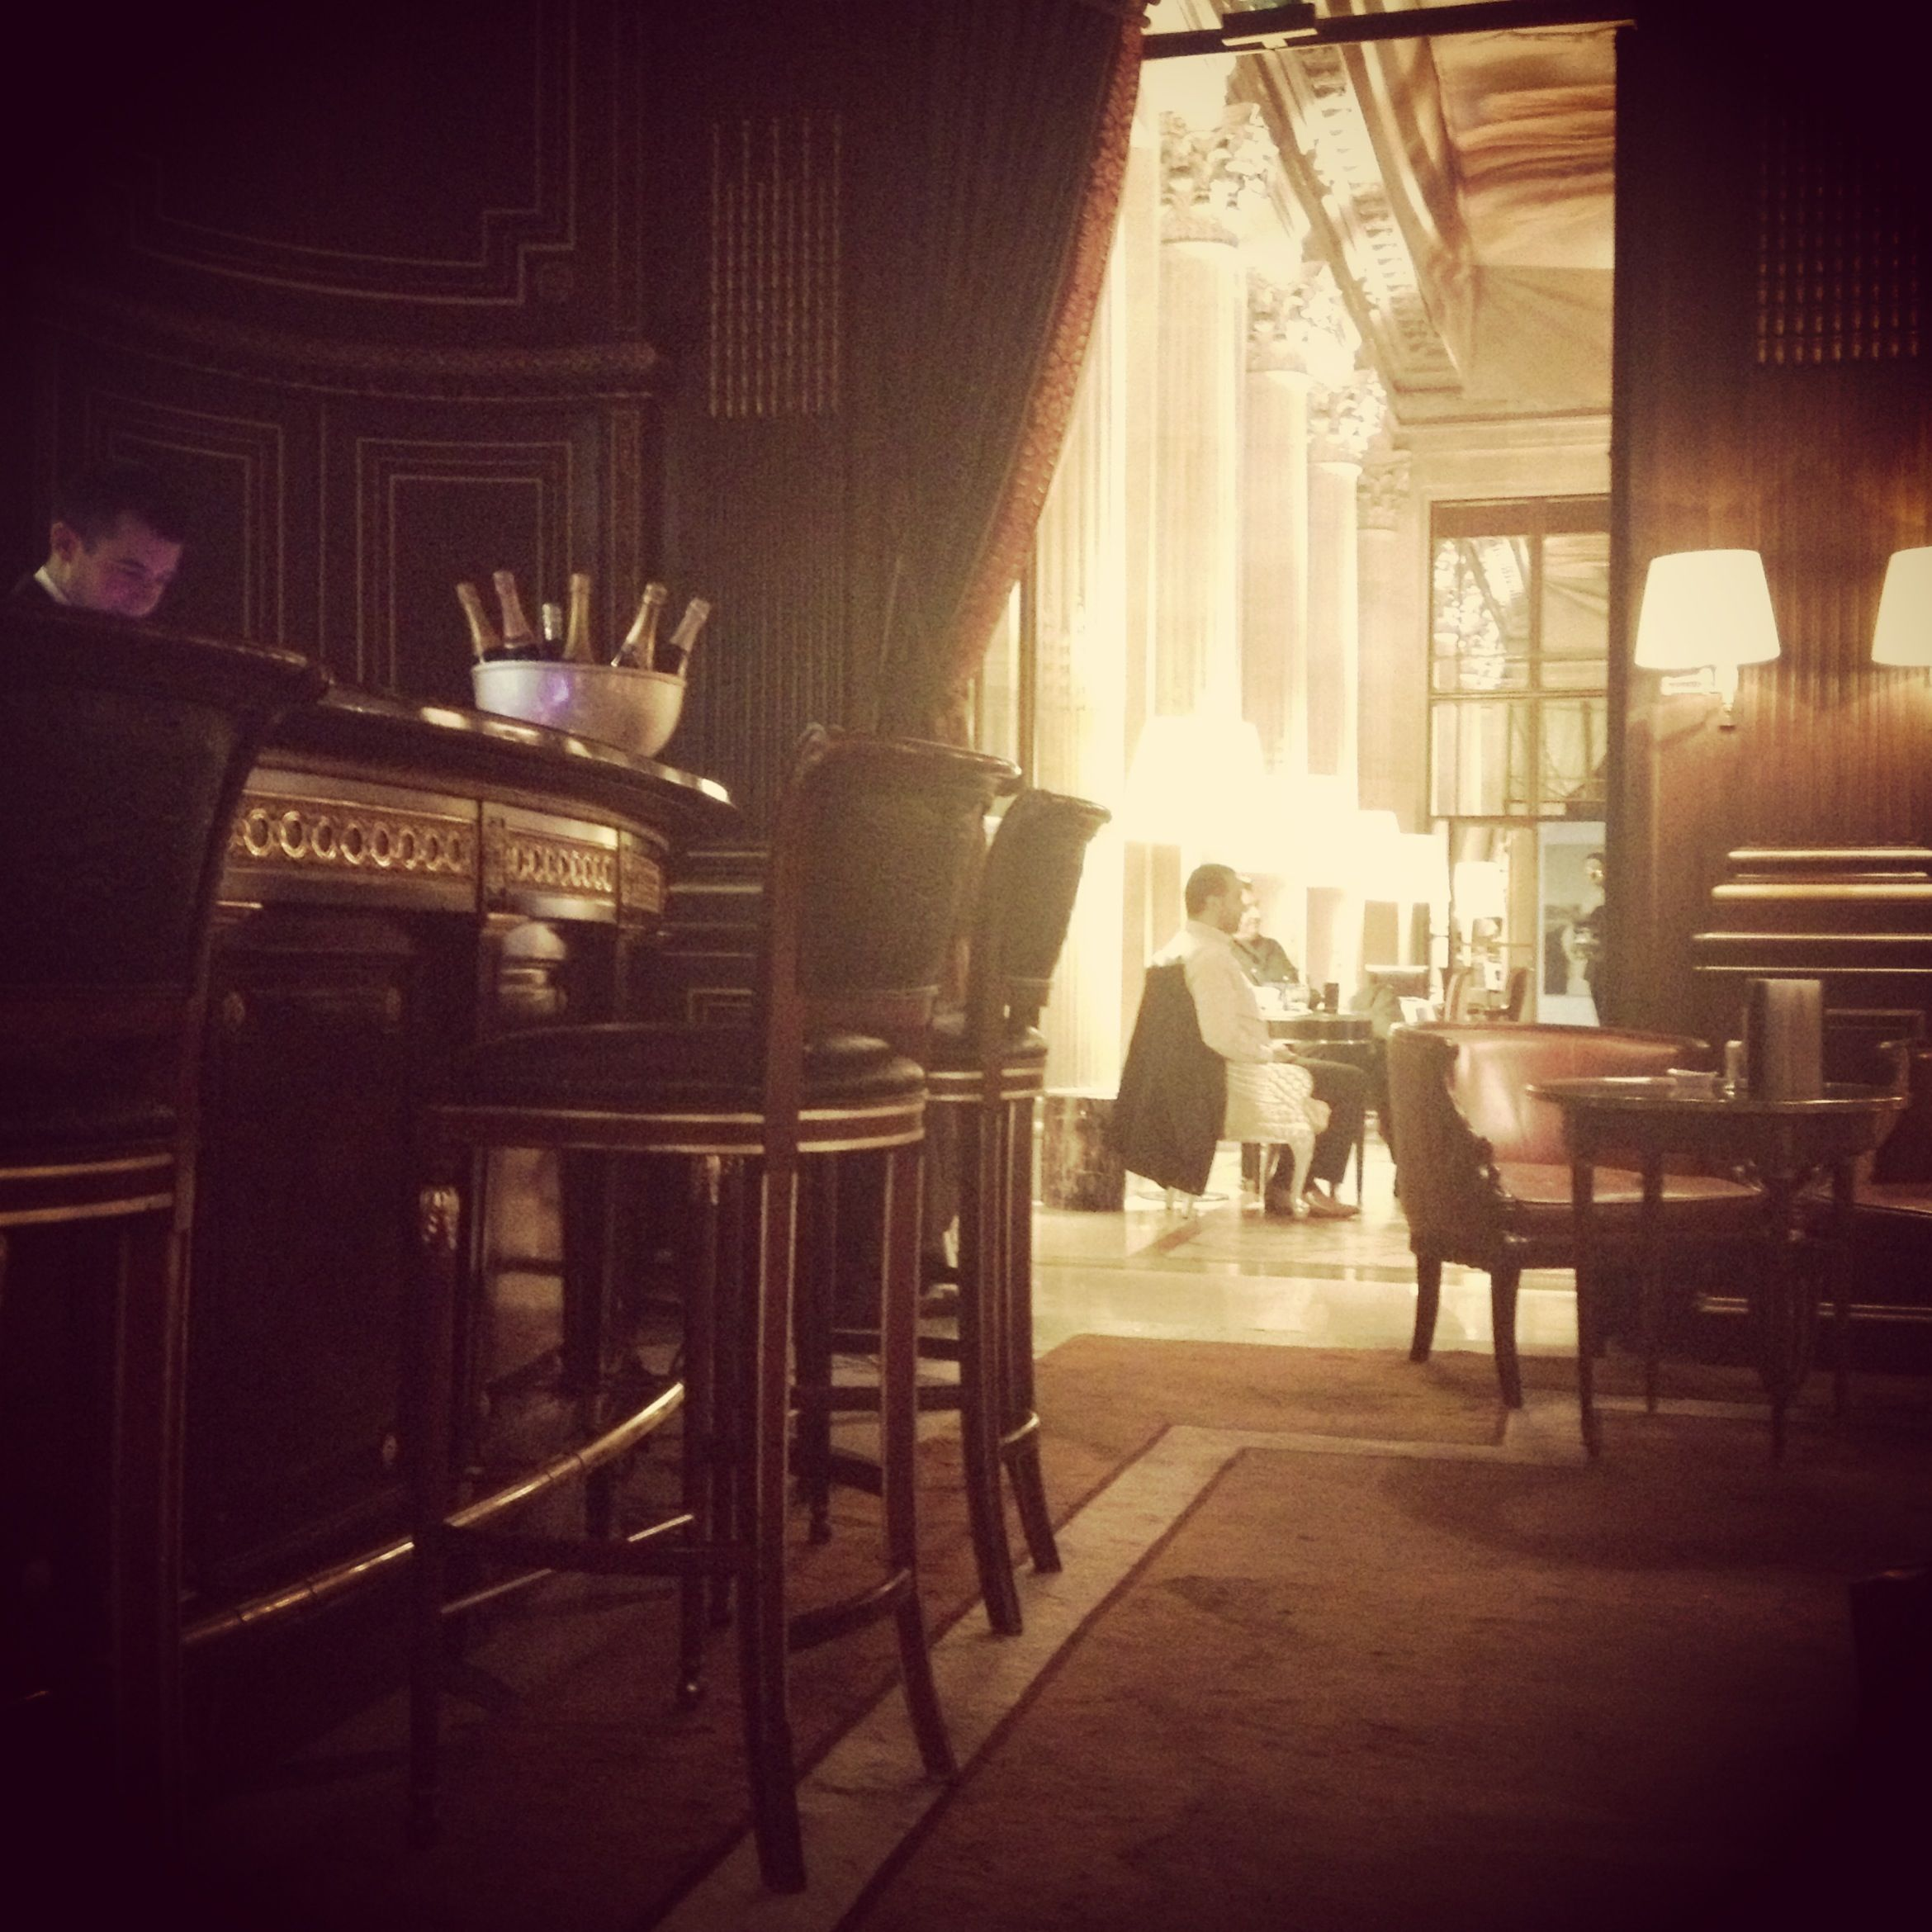 Bar 228 at Le Meurice. Photo by Catherine Down.